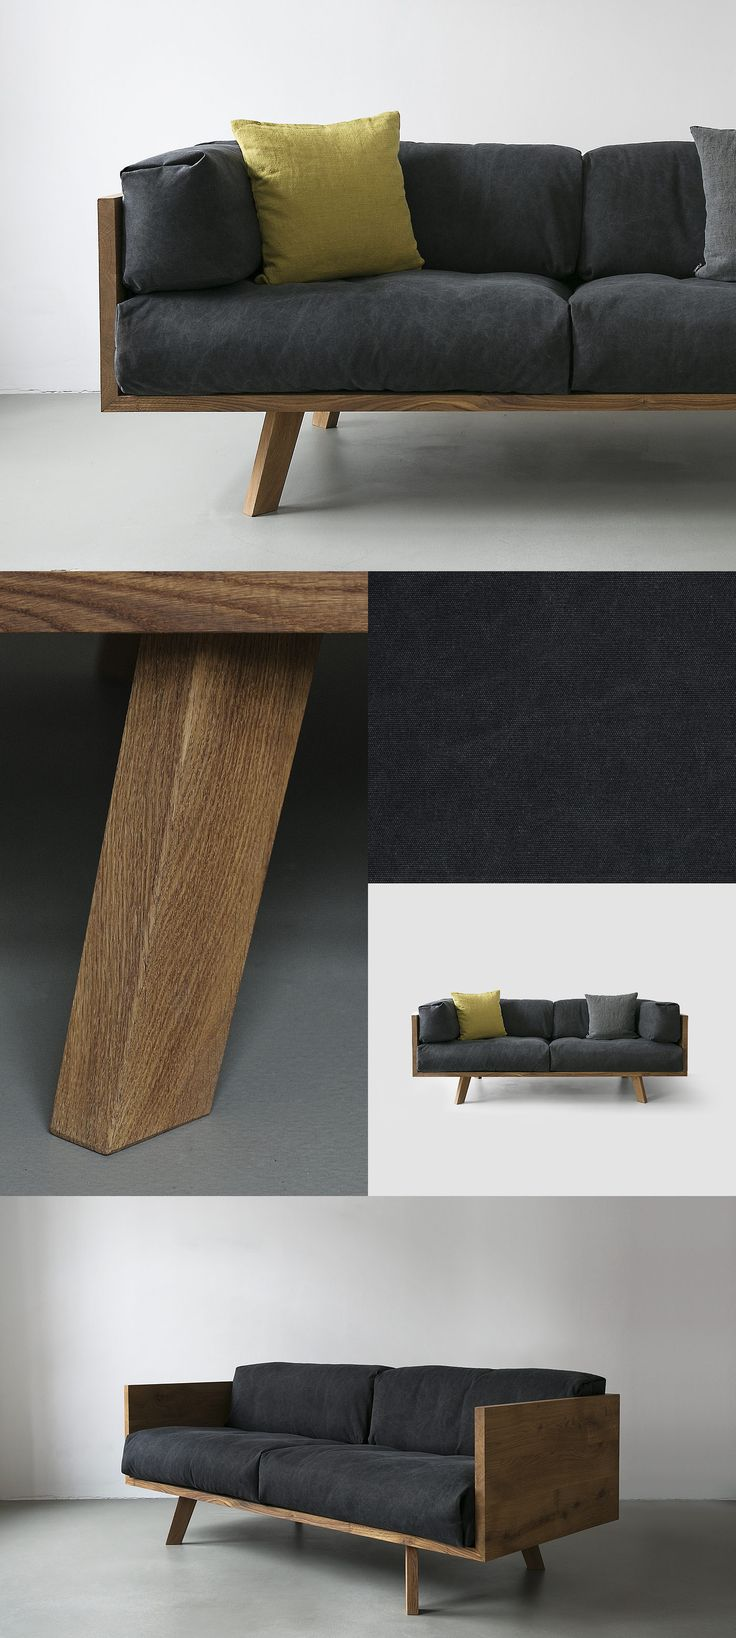 diy furniture I möbel selber bauen I couch sofa daybed I inspiration I NUTSANDWOODS – Oak Linen Sofa